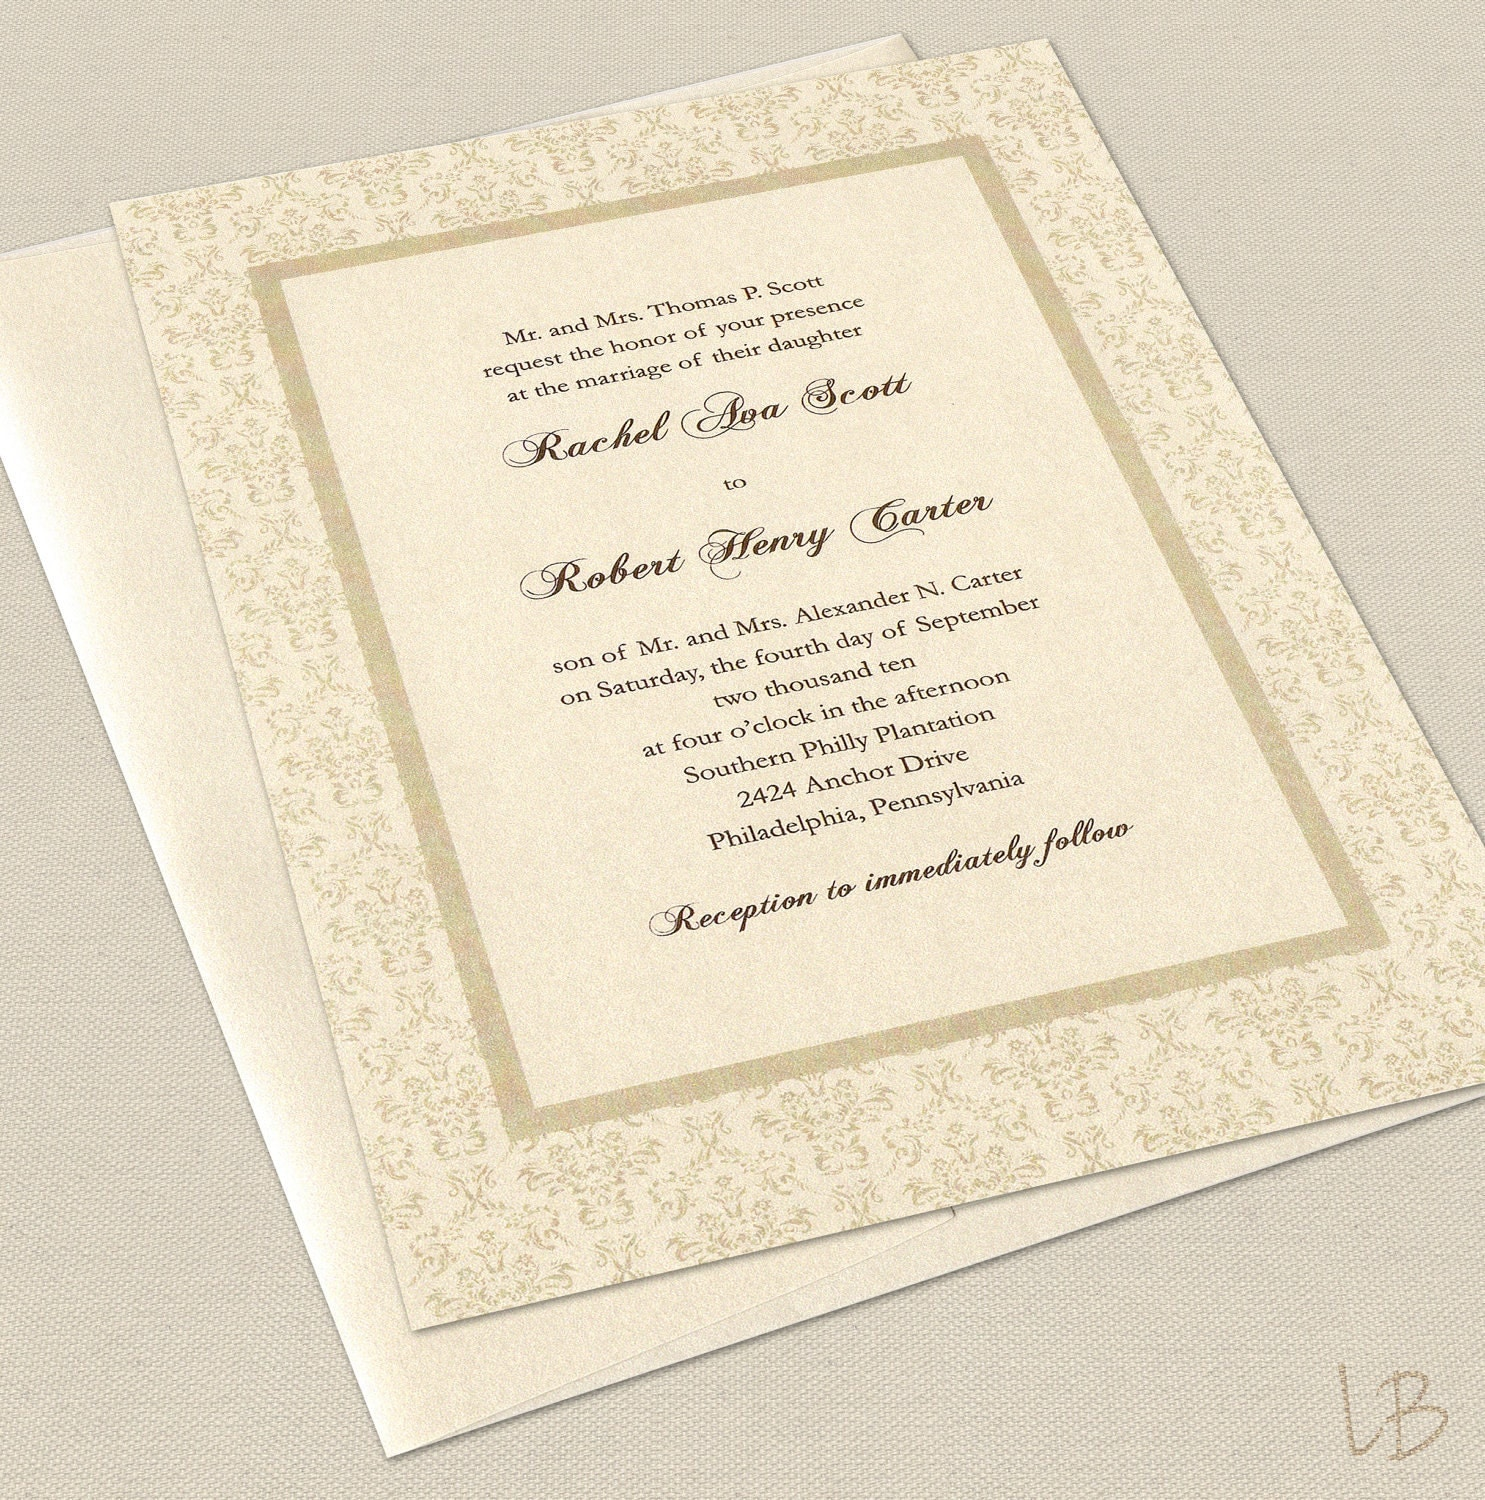 Sample Invitations For Wedding: Formal Wedding Invitation Sample Set By LBcreativepaper On